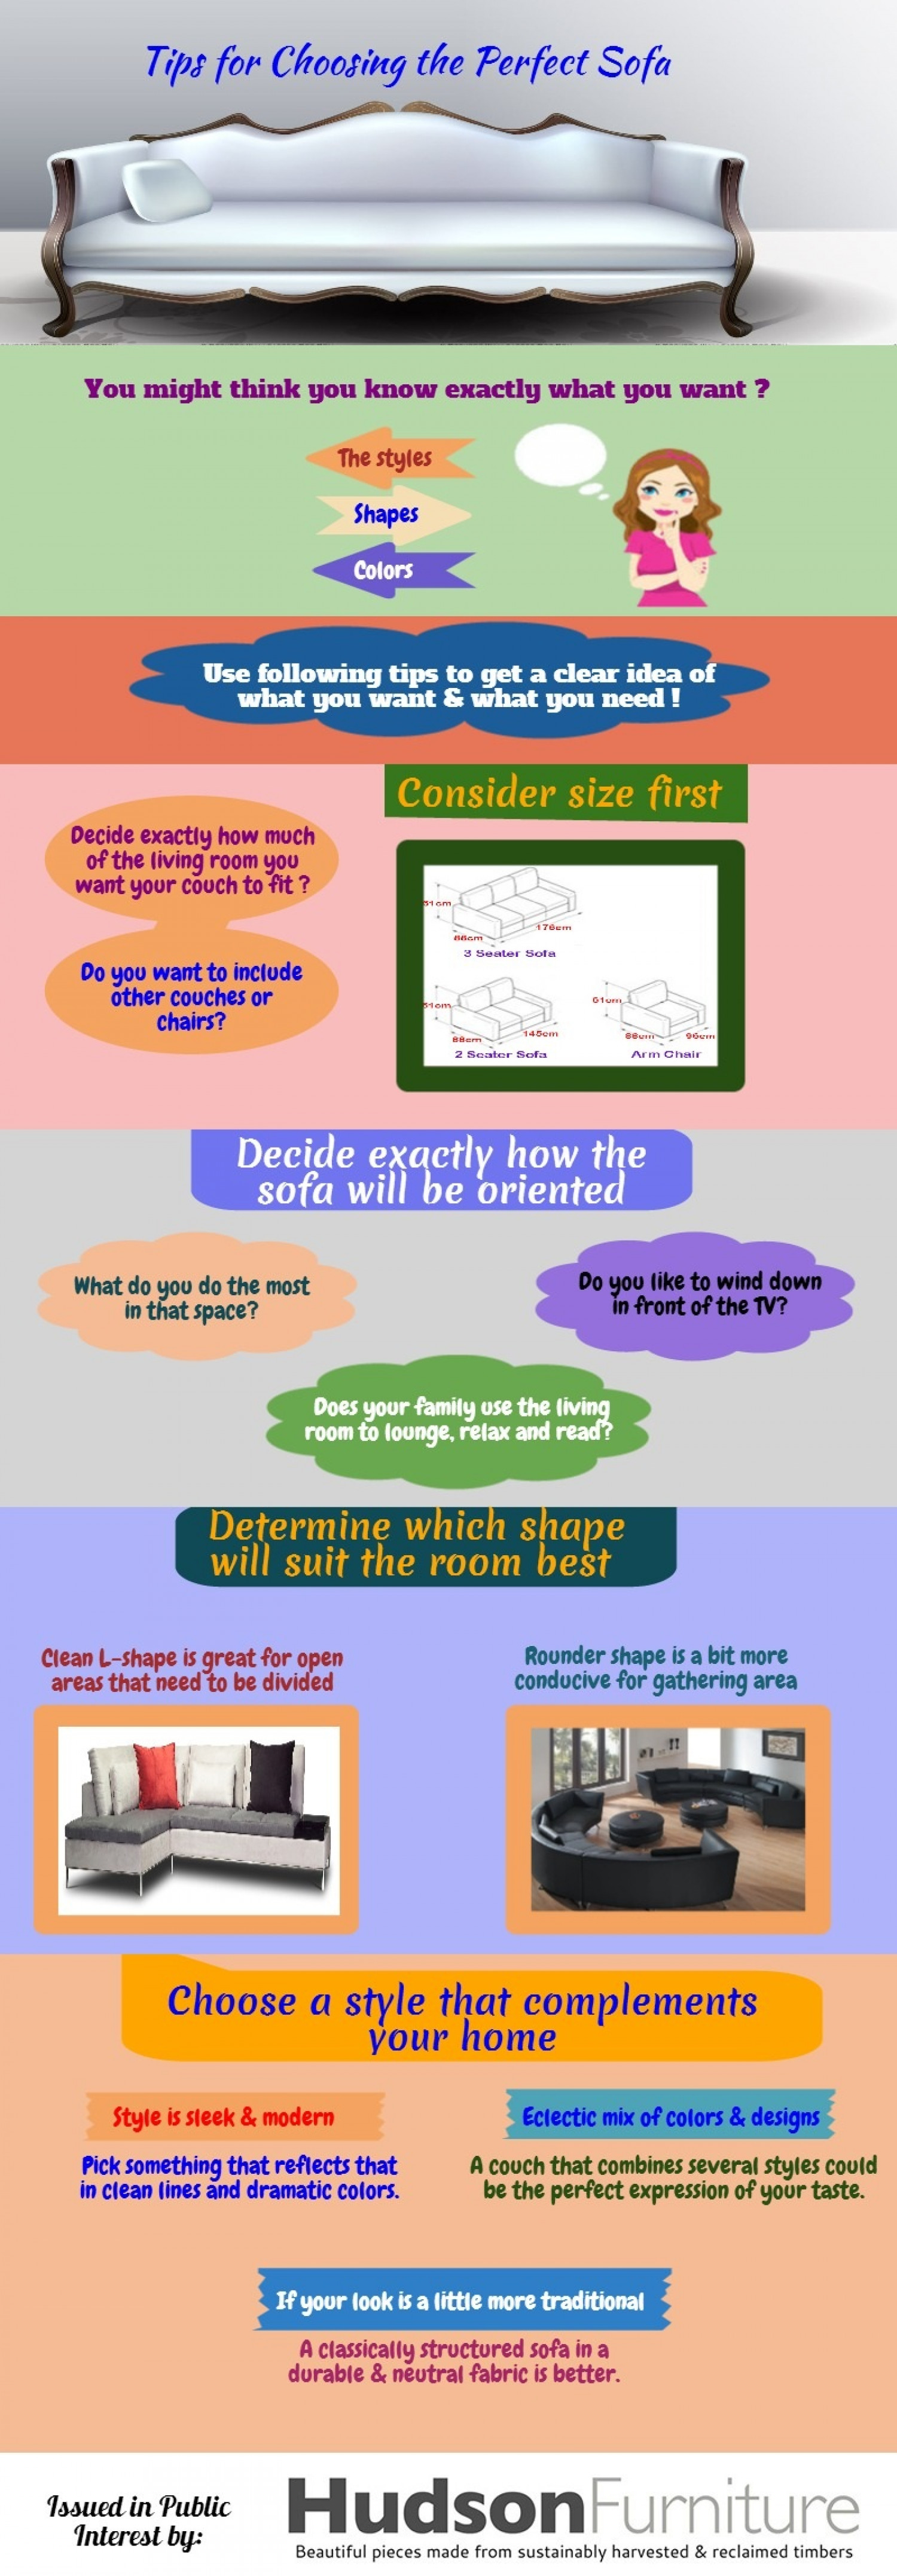 Tips for Choosing the Perfect Sofa Infographic